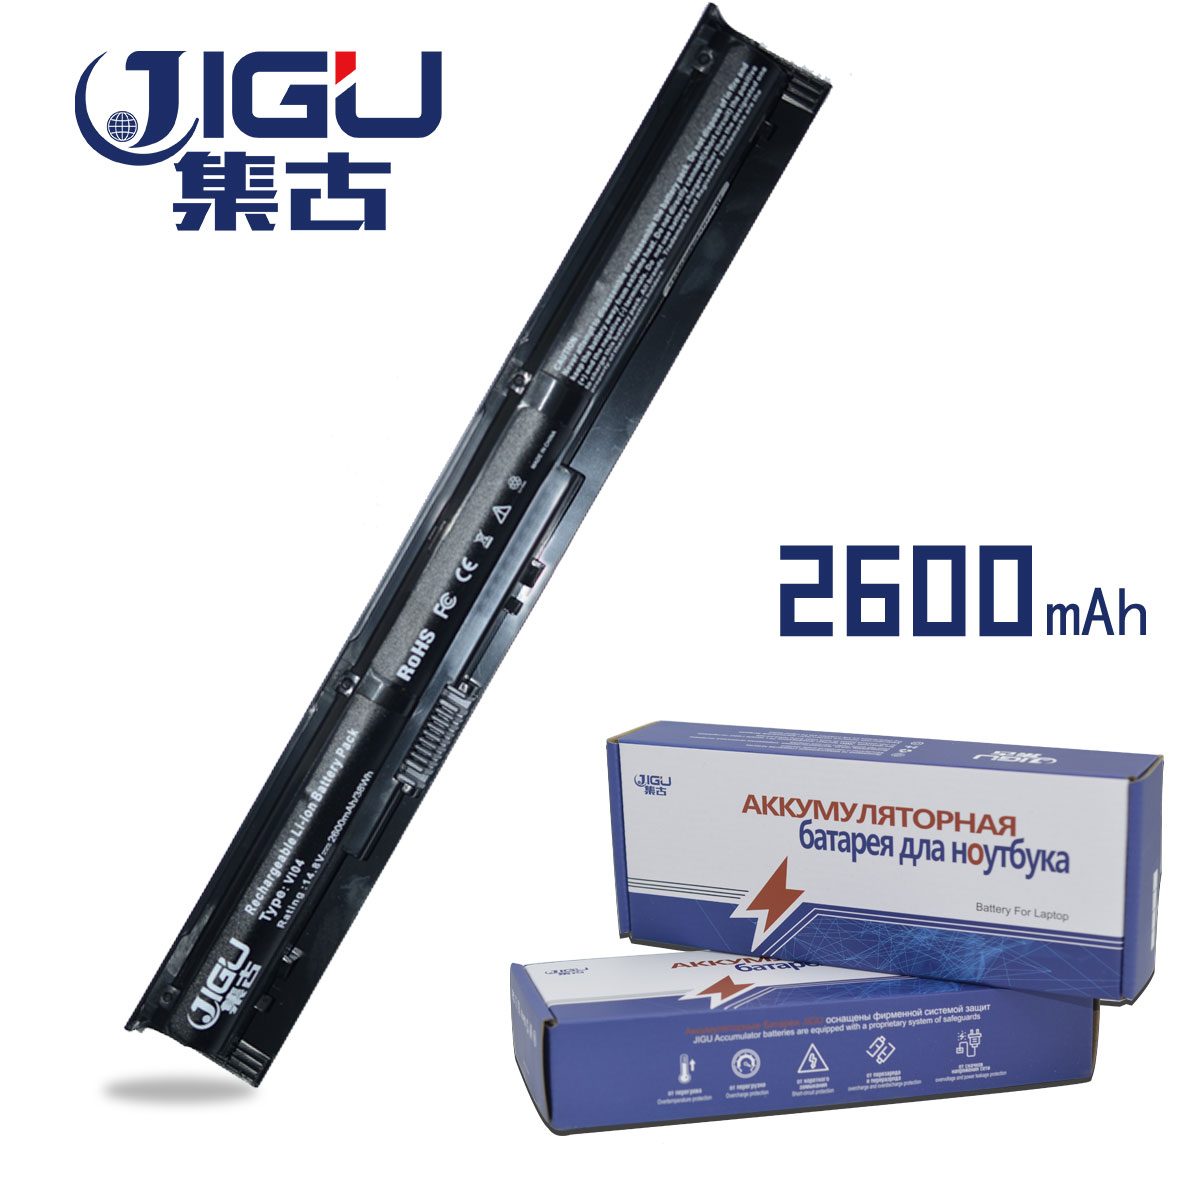 JIGU 2600mah VI04 Laptop Battery TPN-Q140 TPN-Q141 756478-421 HSTNN-DB6K LB6K For HP Pavilion 17 15 For ENVY 15-K028TX K031TX 15 2v 58wh rr04 notebook battery for hp omen 15 15 5014tx tpn w111 778951 421 4icp6 60 80 hstnn lb6n